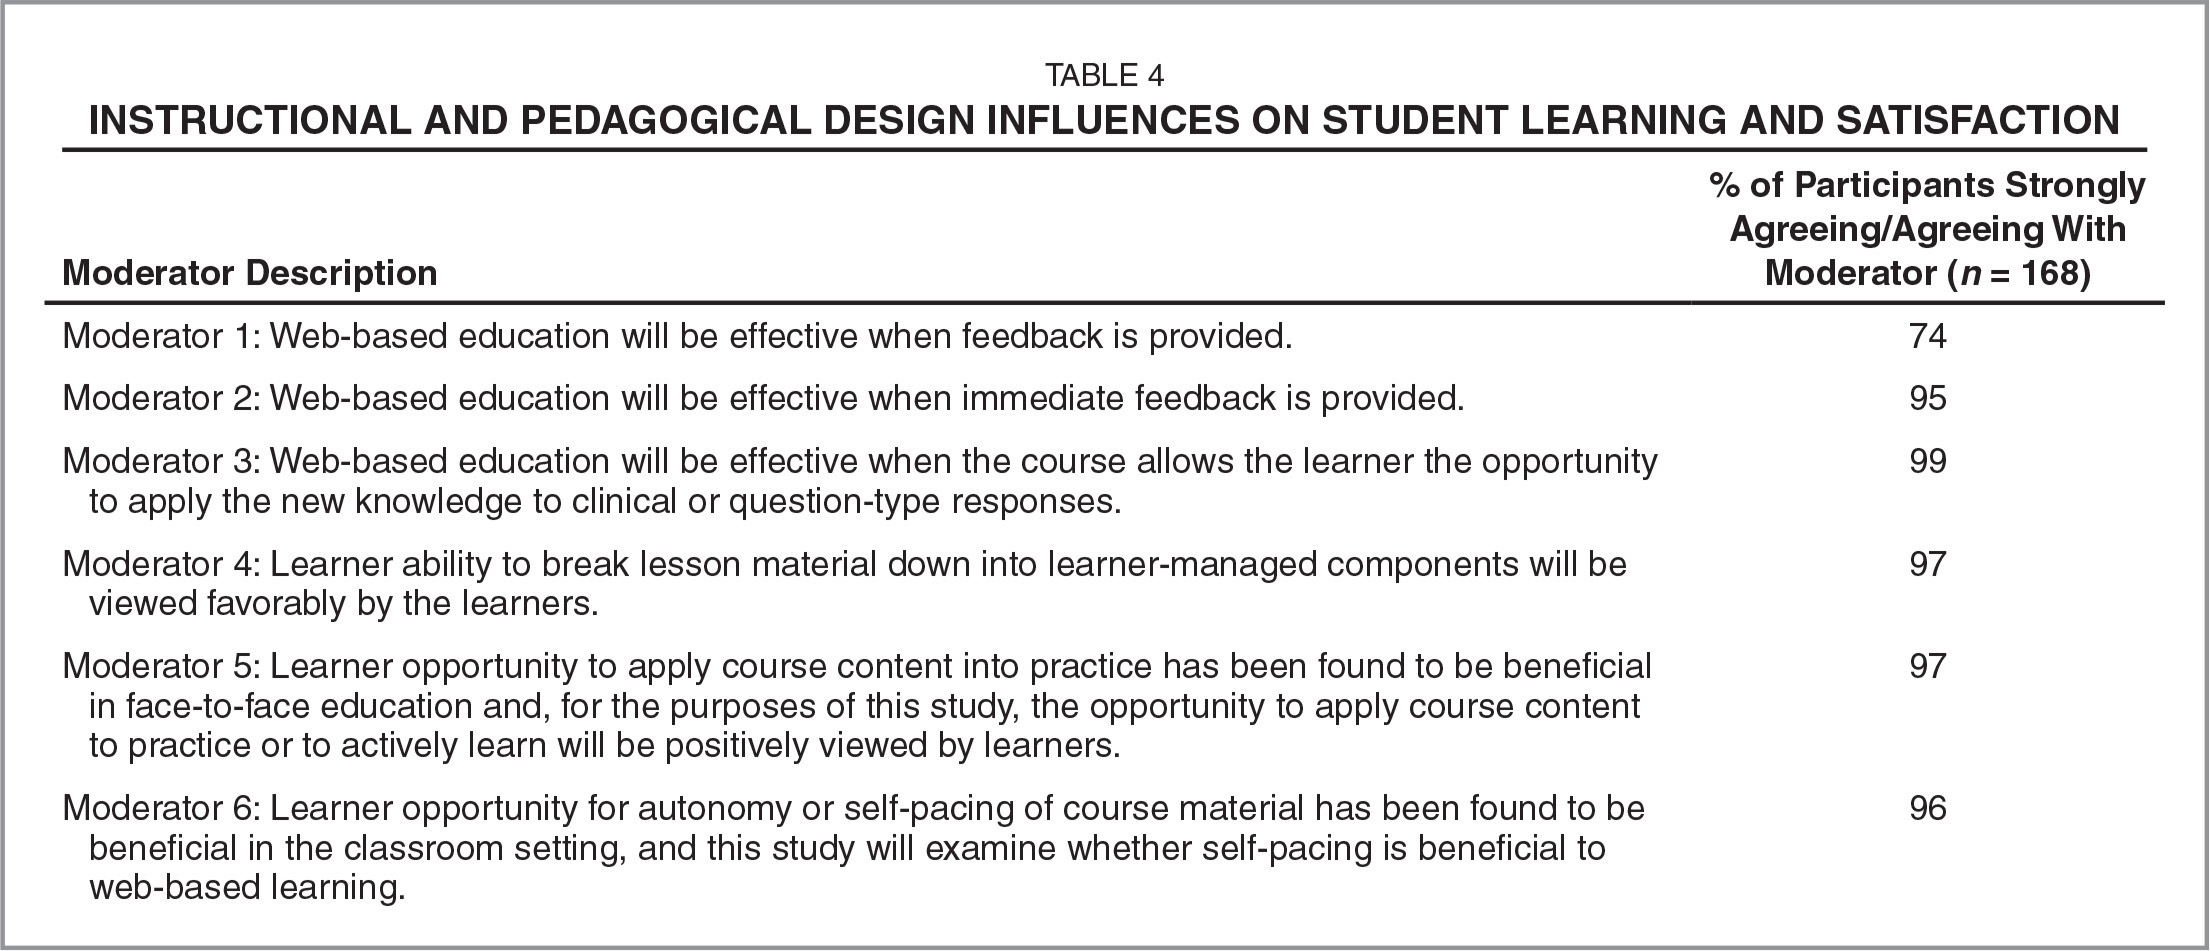 instructional develop just for personal big difference the scenario study